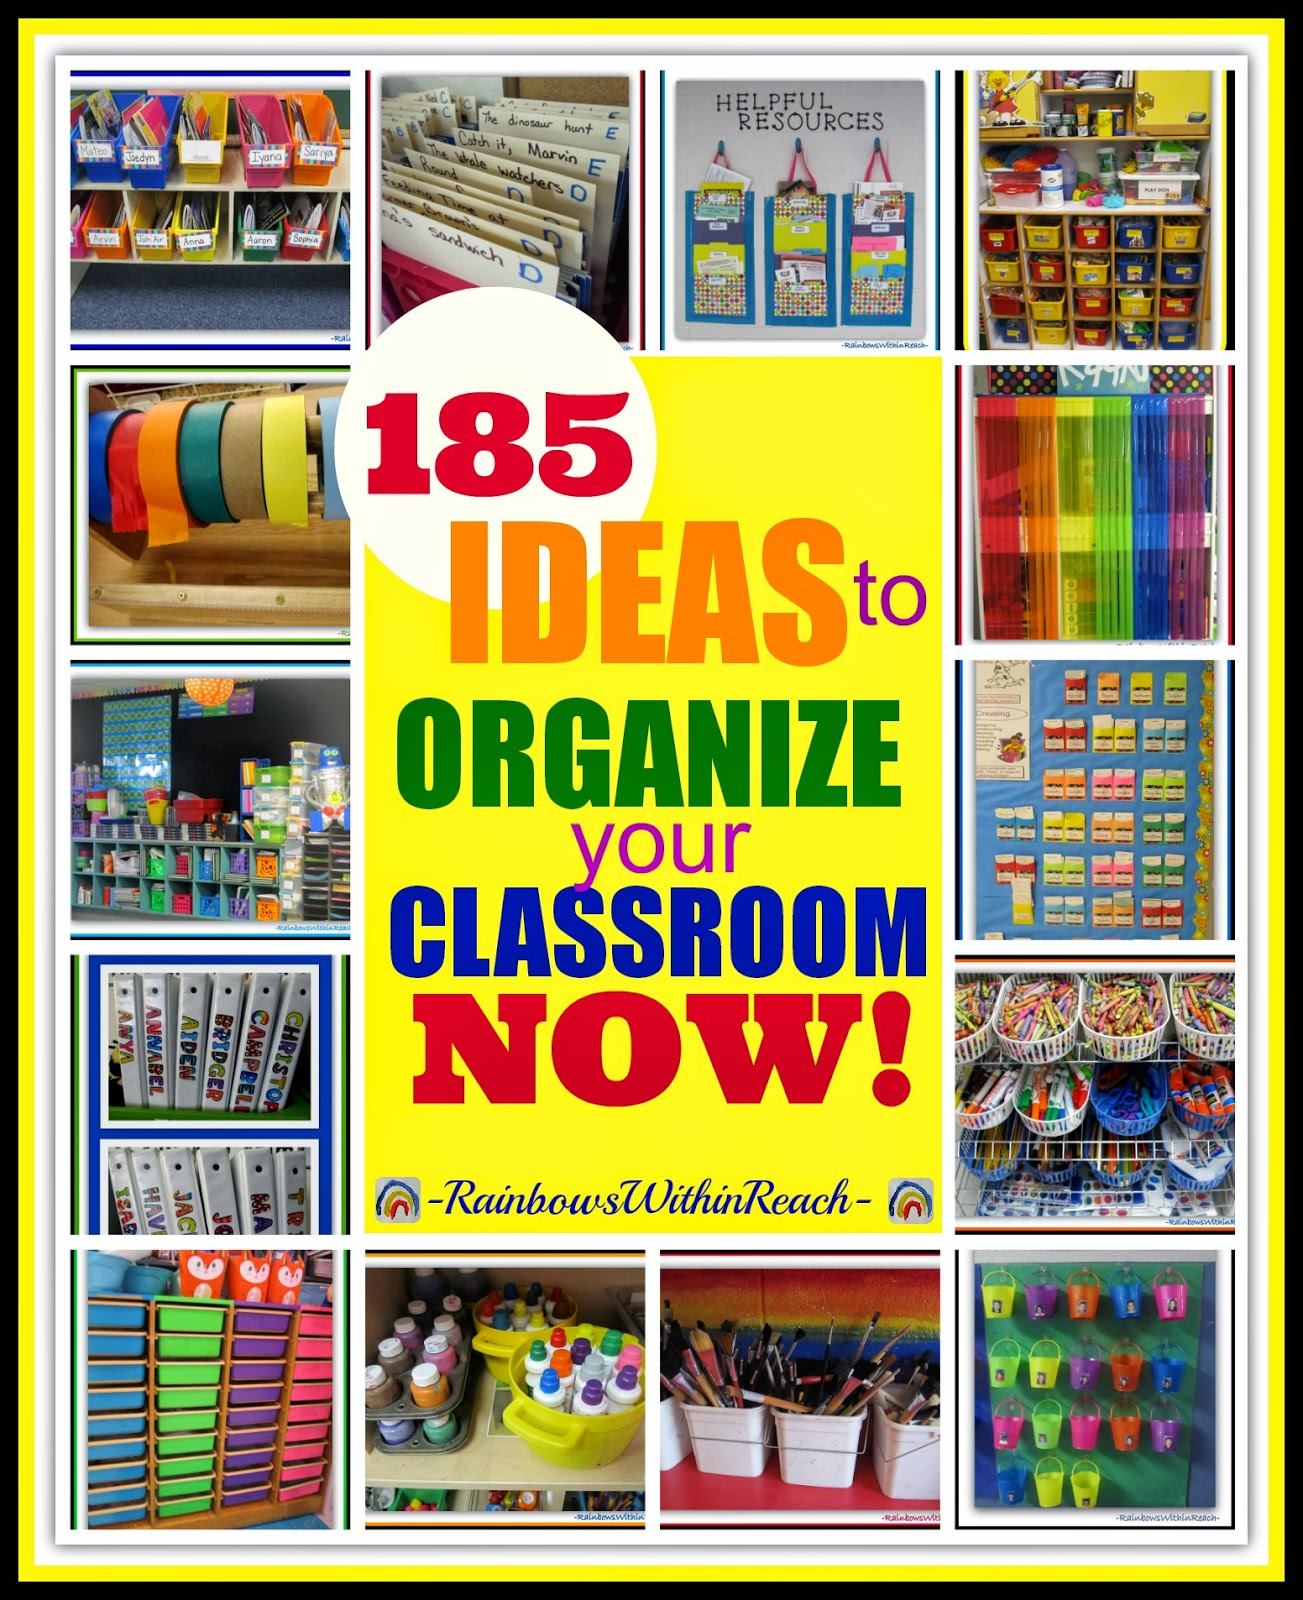 Classroom Storage Ideas ~ Rainbowswithinreach ideas for classroom organization